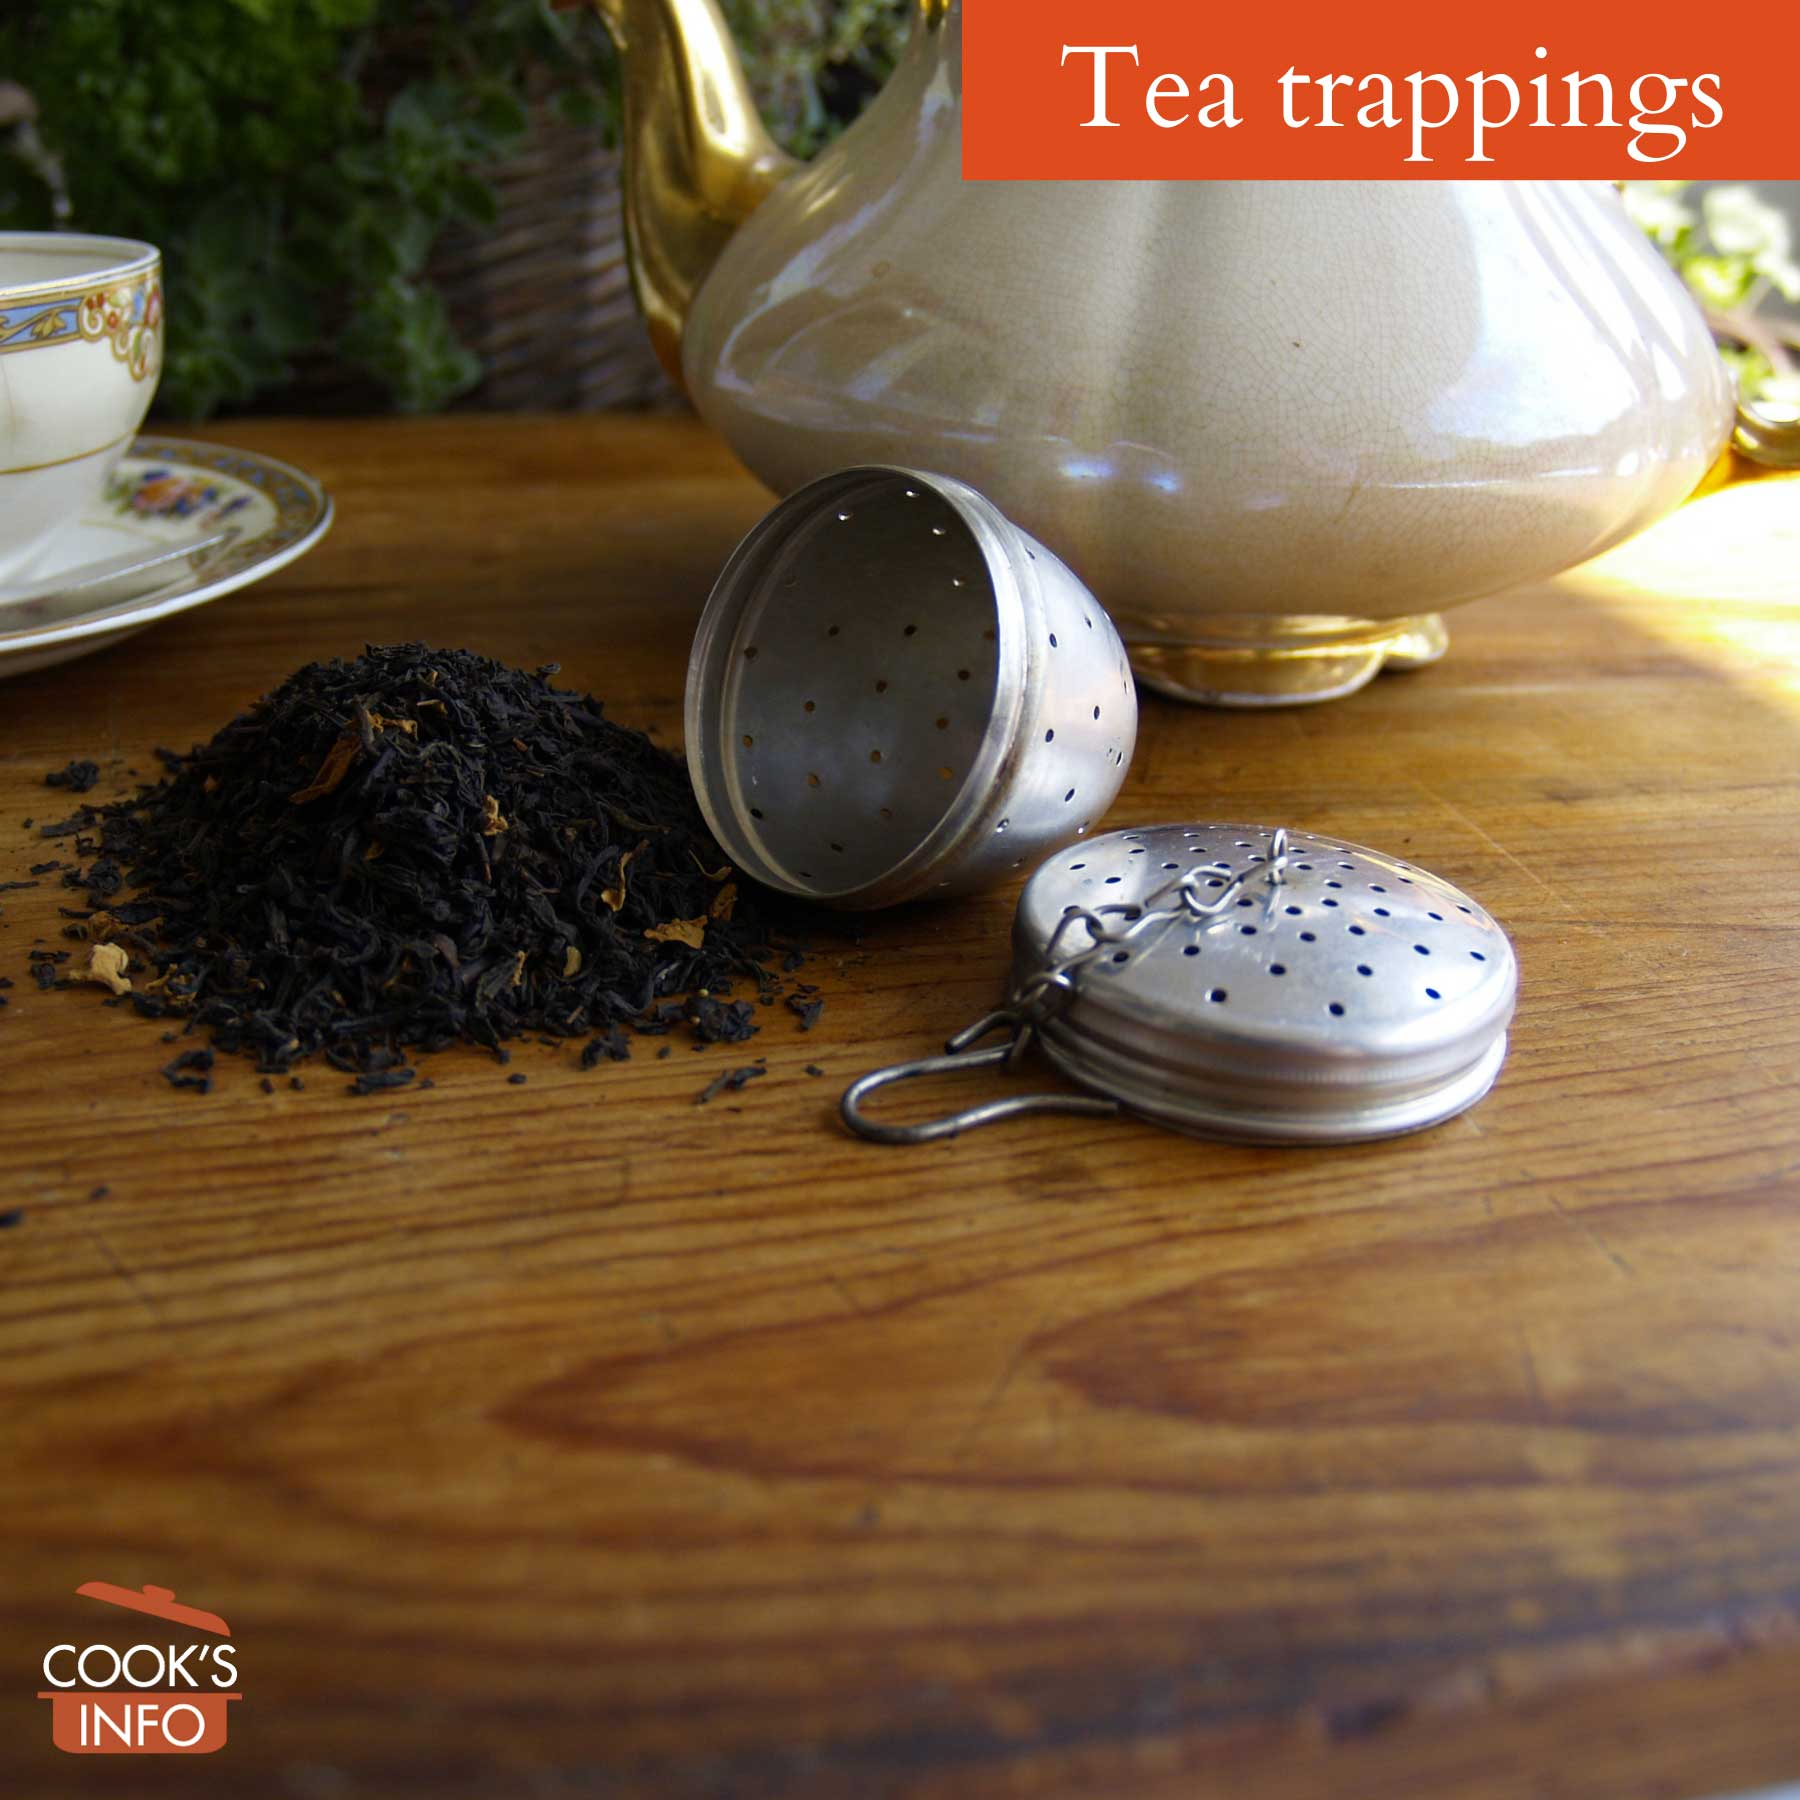 Tea trappings